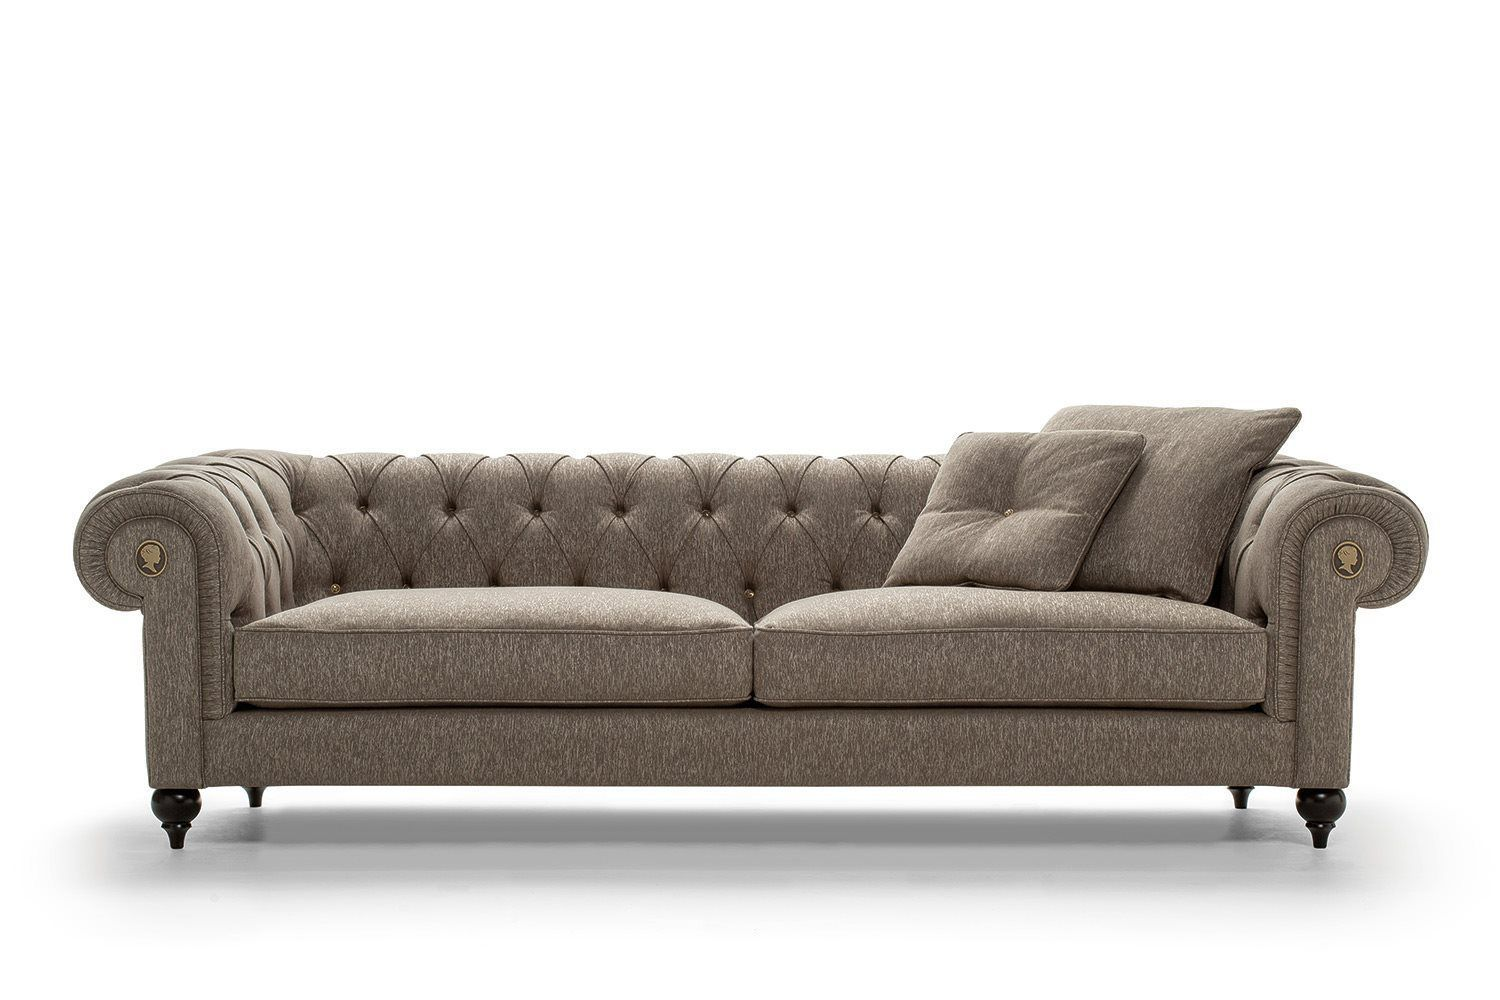 Favori Canapé chesterfield / en cuir / en tissu / 4 places - ALFRED by  JW21